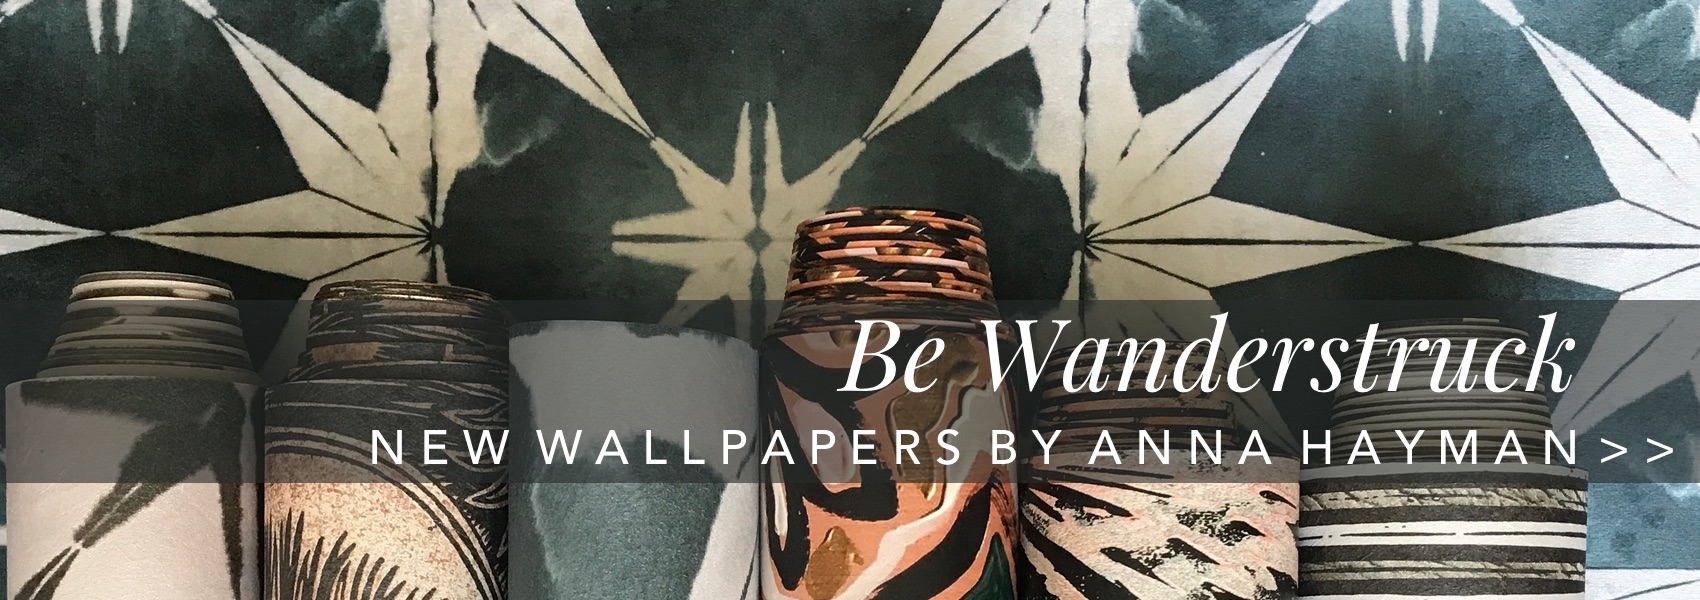 Be Wanderstuck. New Wallpapers by Anna Hayman at Curious Egg